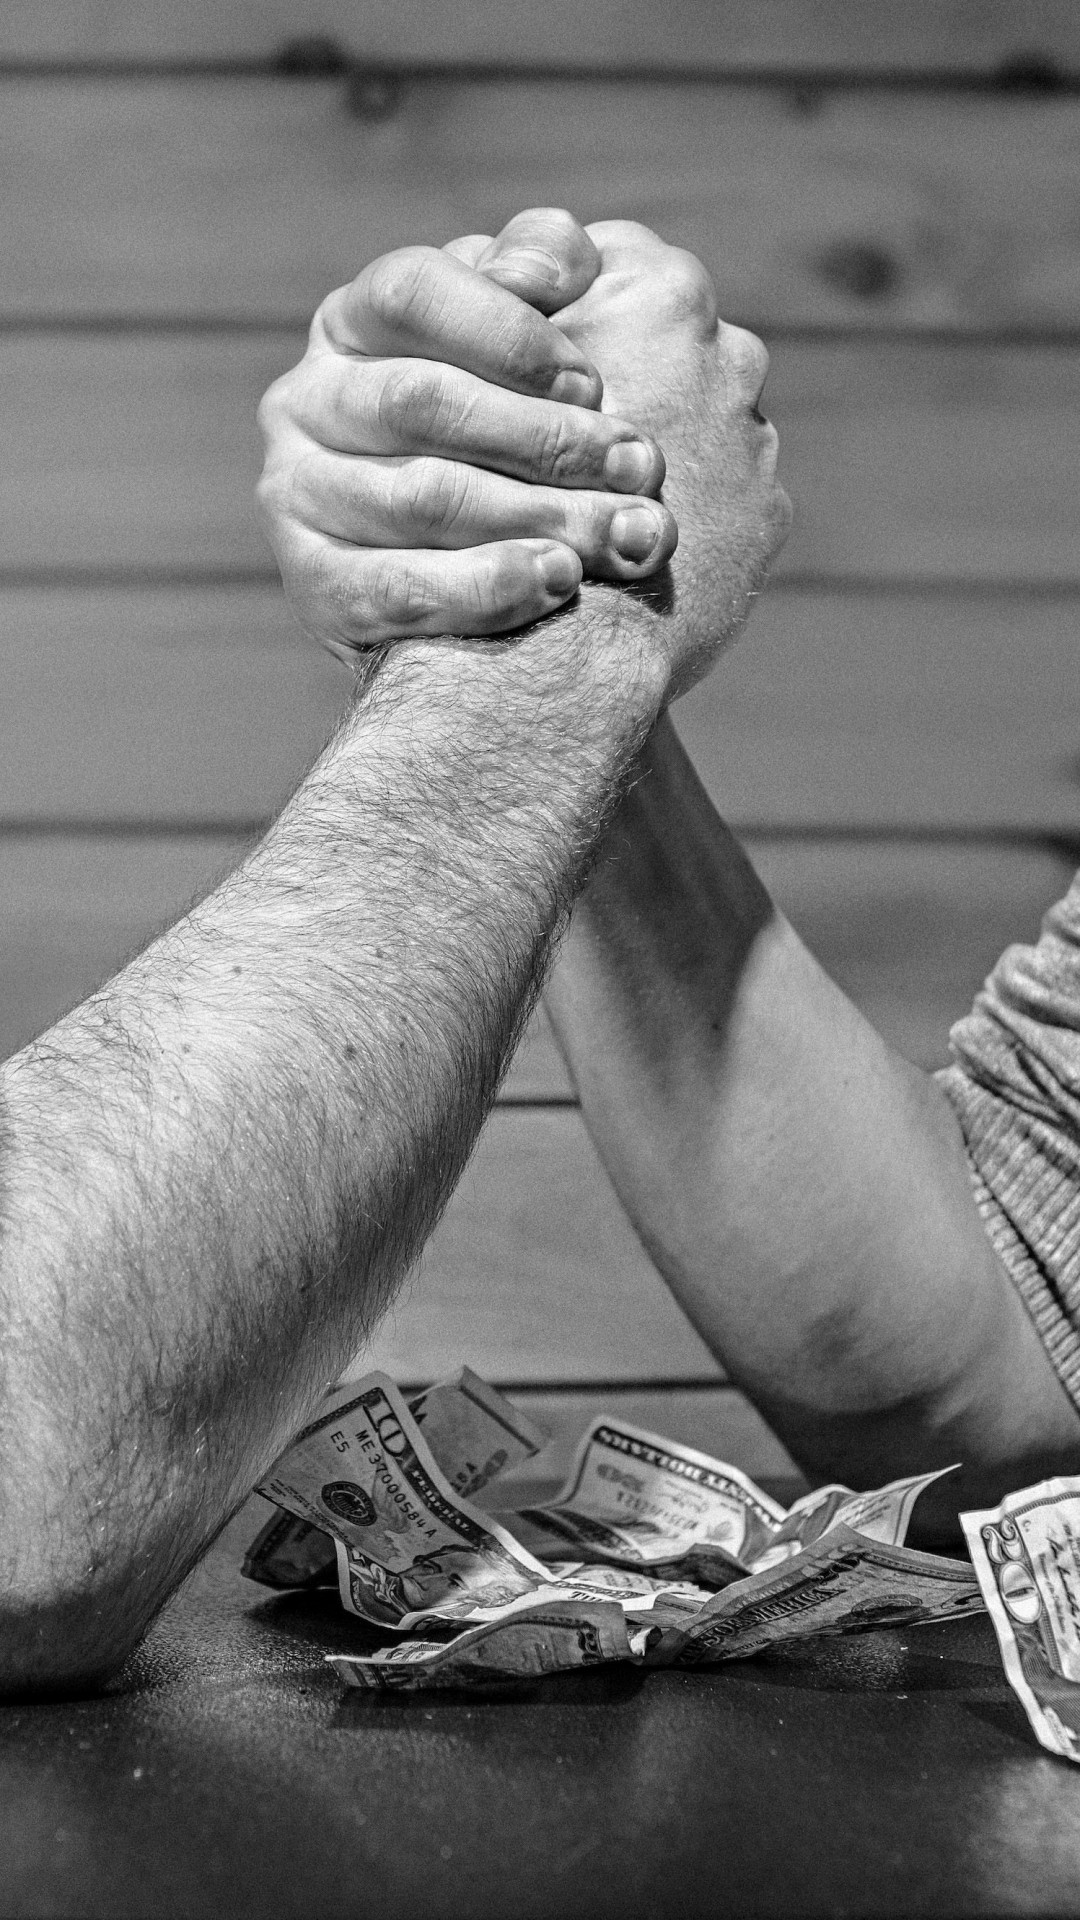 Arm Wrestling Wallpaper for SONY Xperia Z1